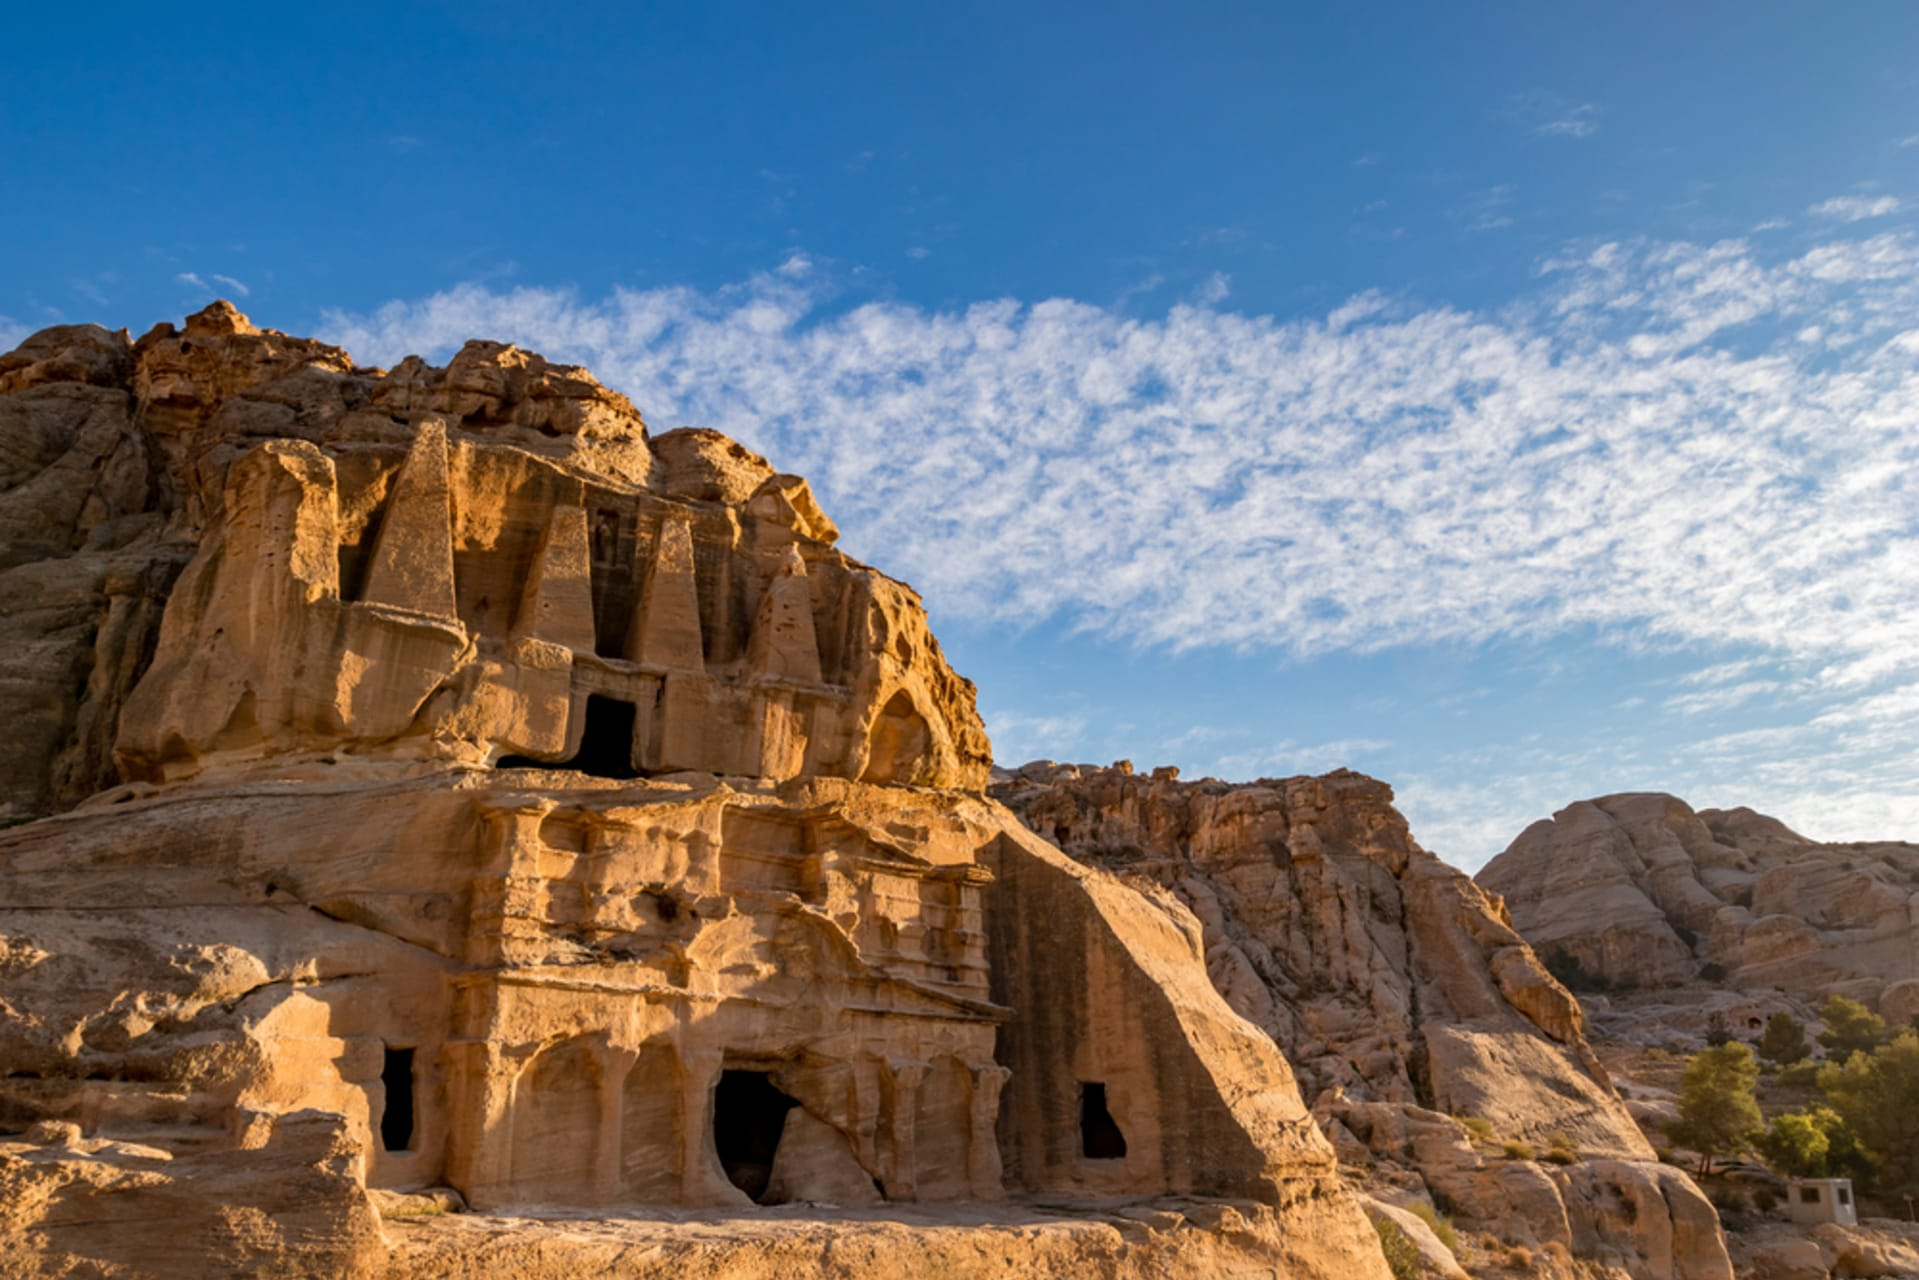 Petra - Petra, One of the 7 Wonders - Trail I